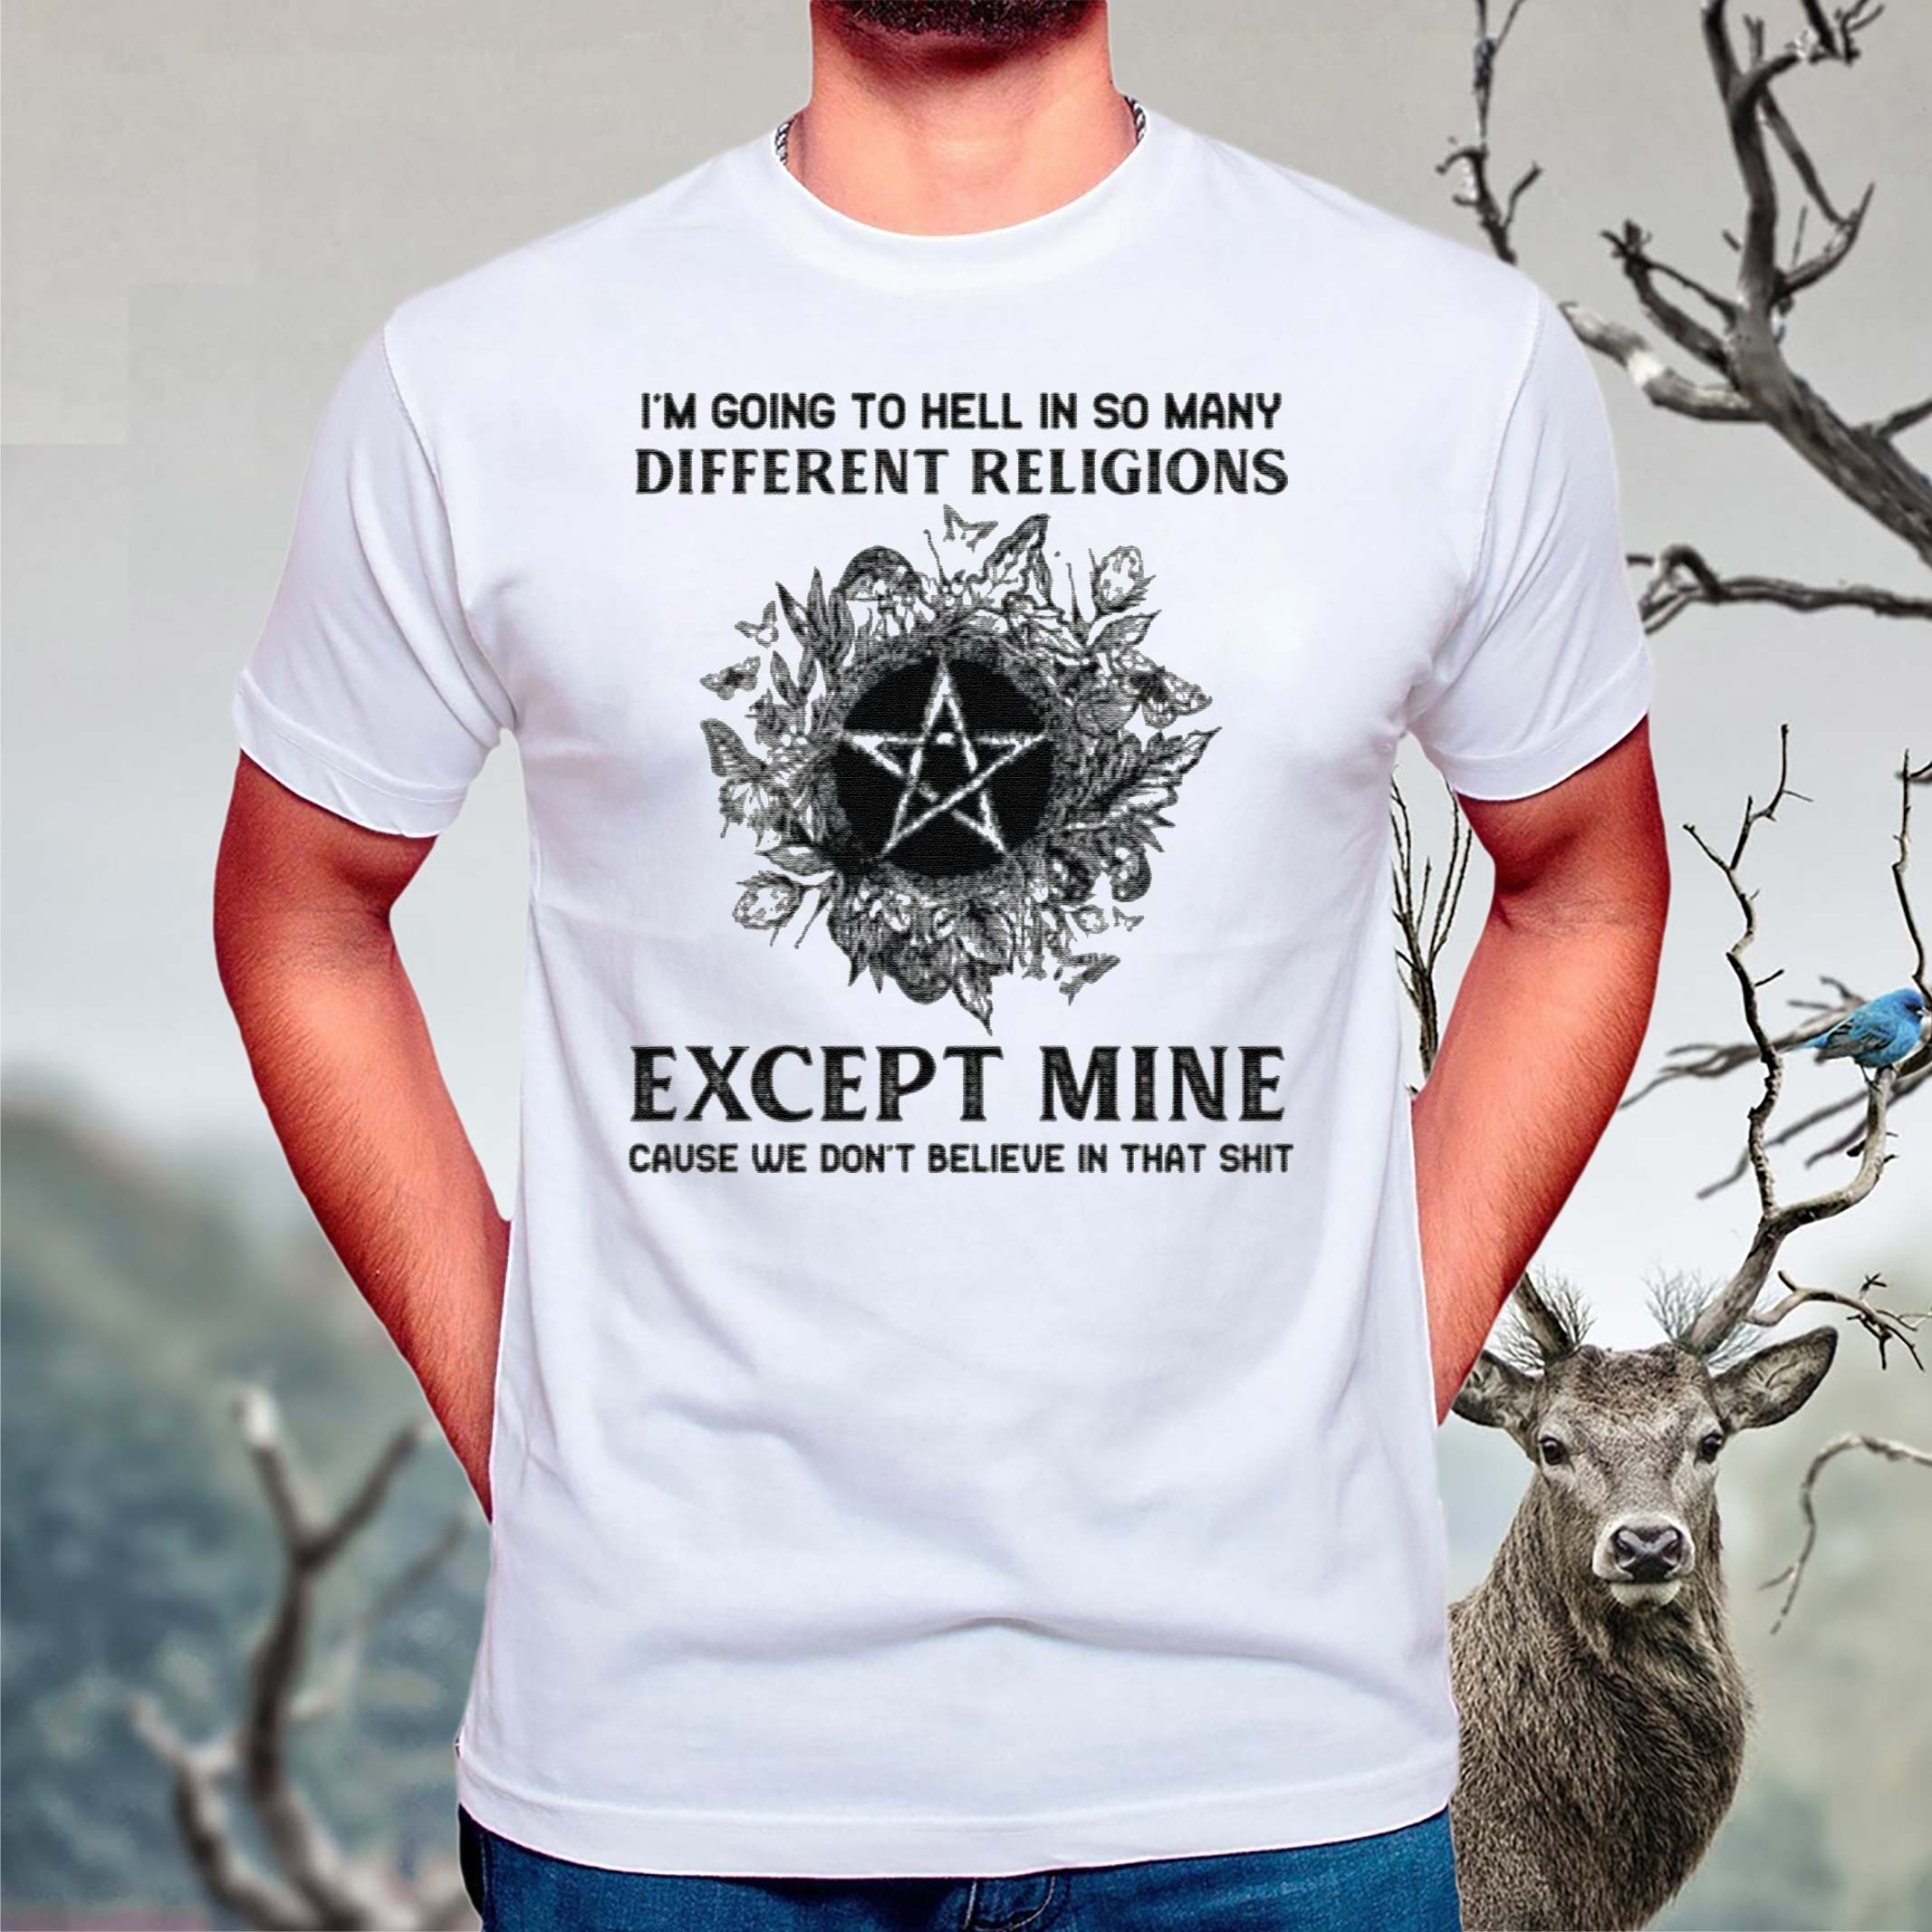 I'm-Going-To-Hell-In-So-Many-Different-Religions-Except-Mine-Cause-We-Don't-Believe-In-That-Shit-T-Shirts